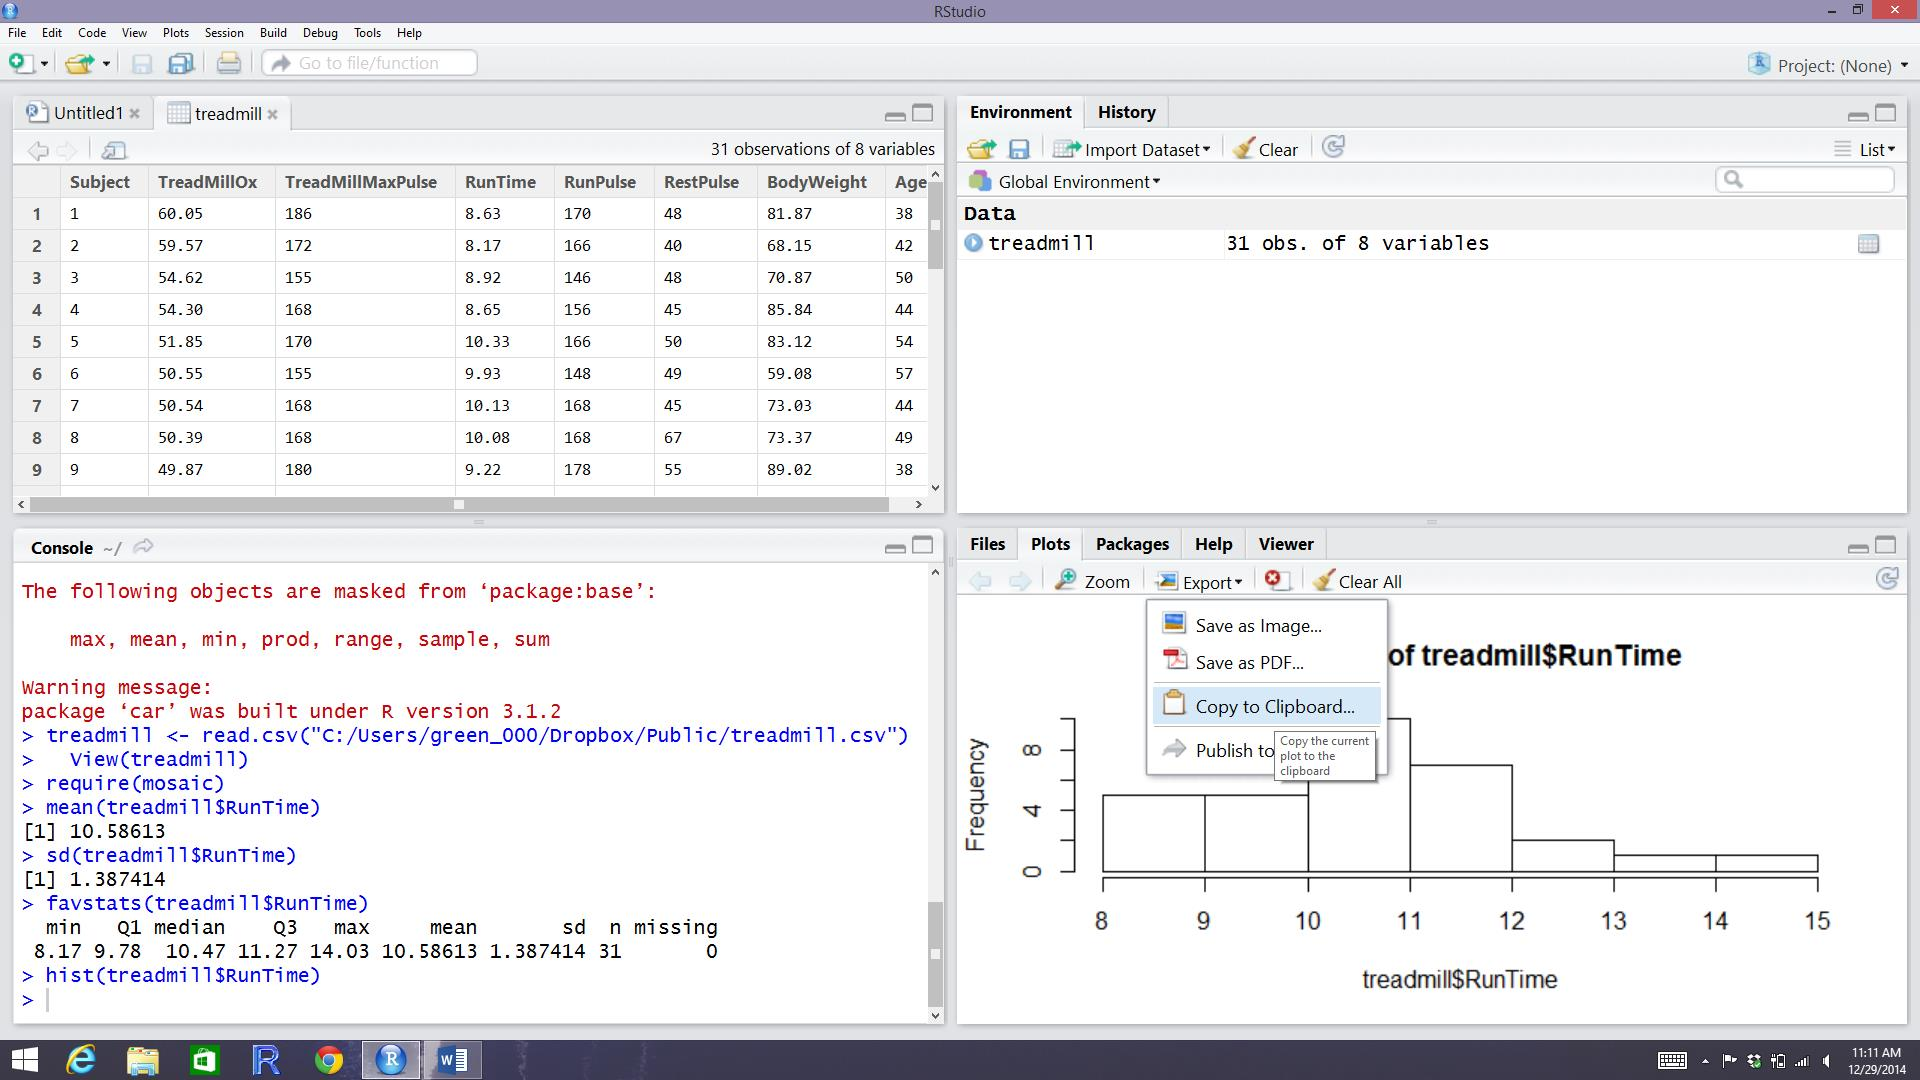 Figure 06: Rstudio While In The Process Of Copying The Histogram